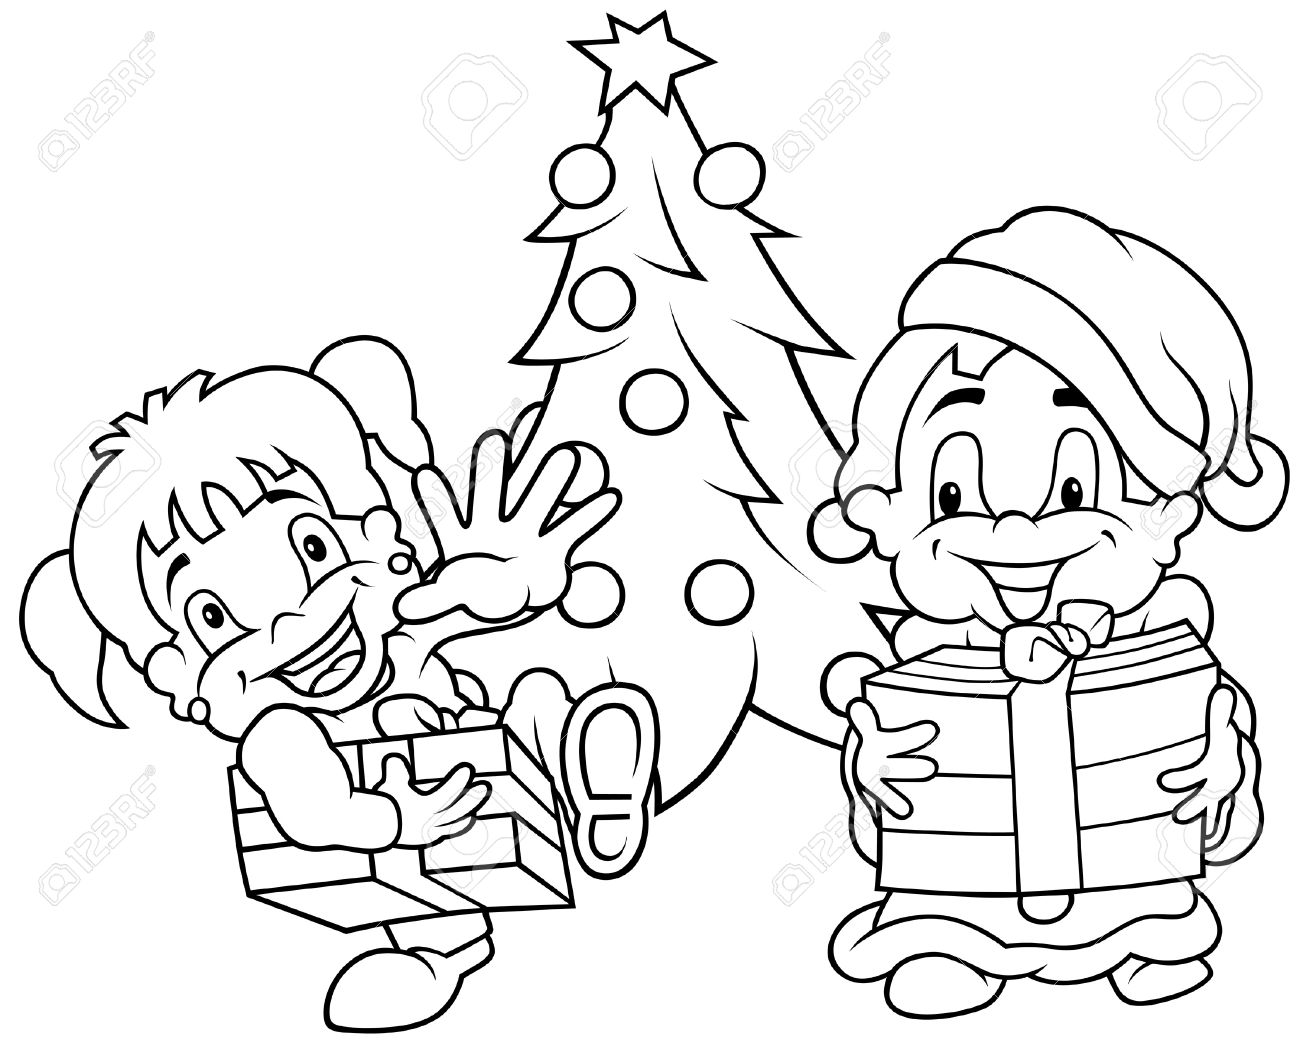 Christmas Images Cartoon Black And White.Children Christmas Black And White Cartoon Illustration Vector